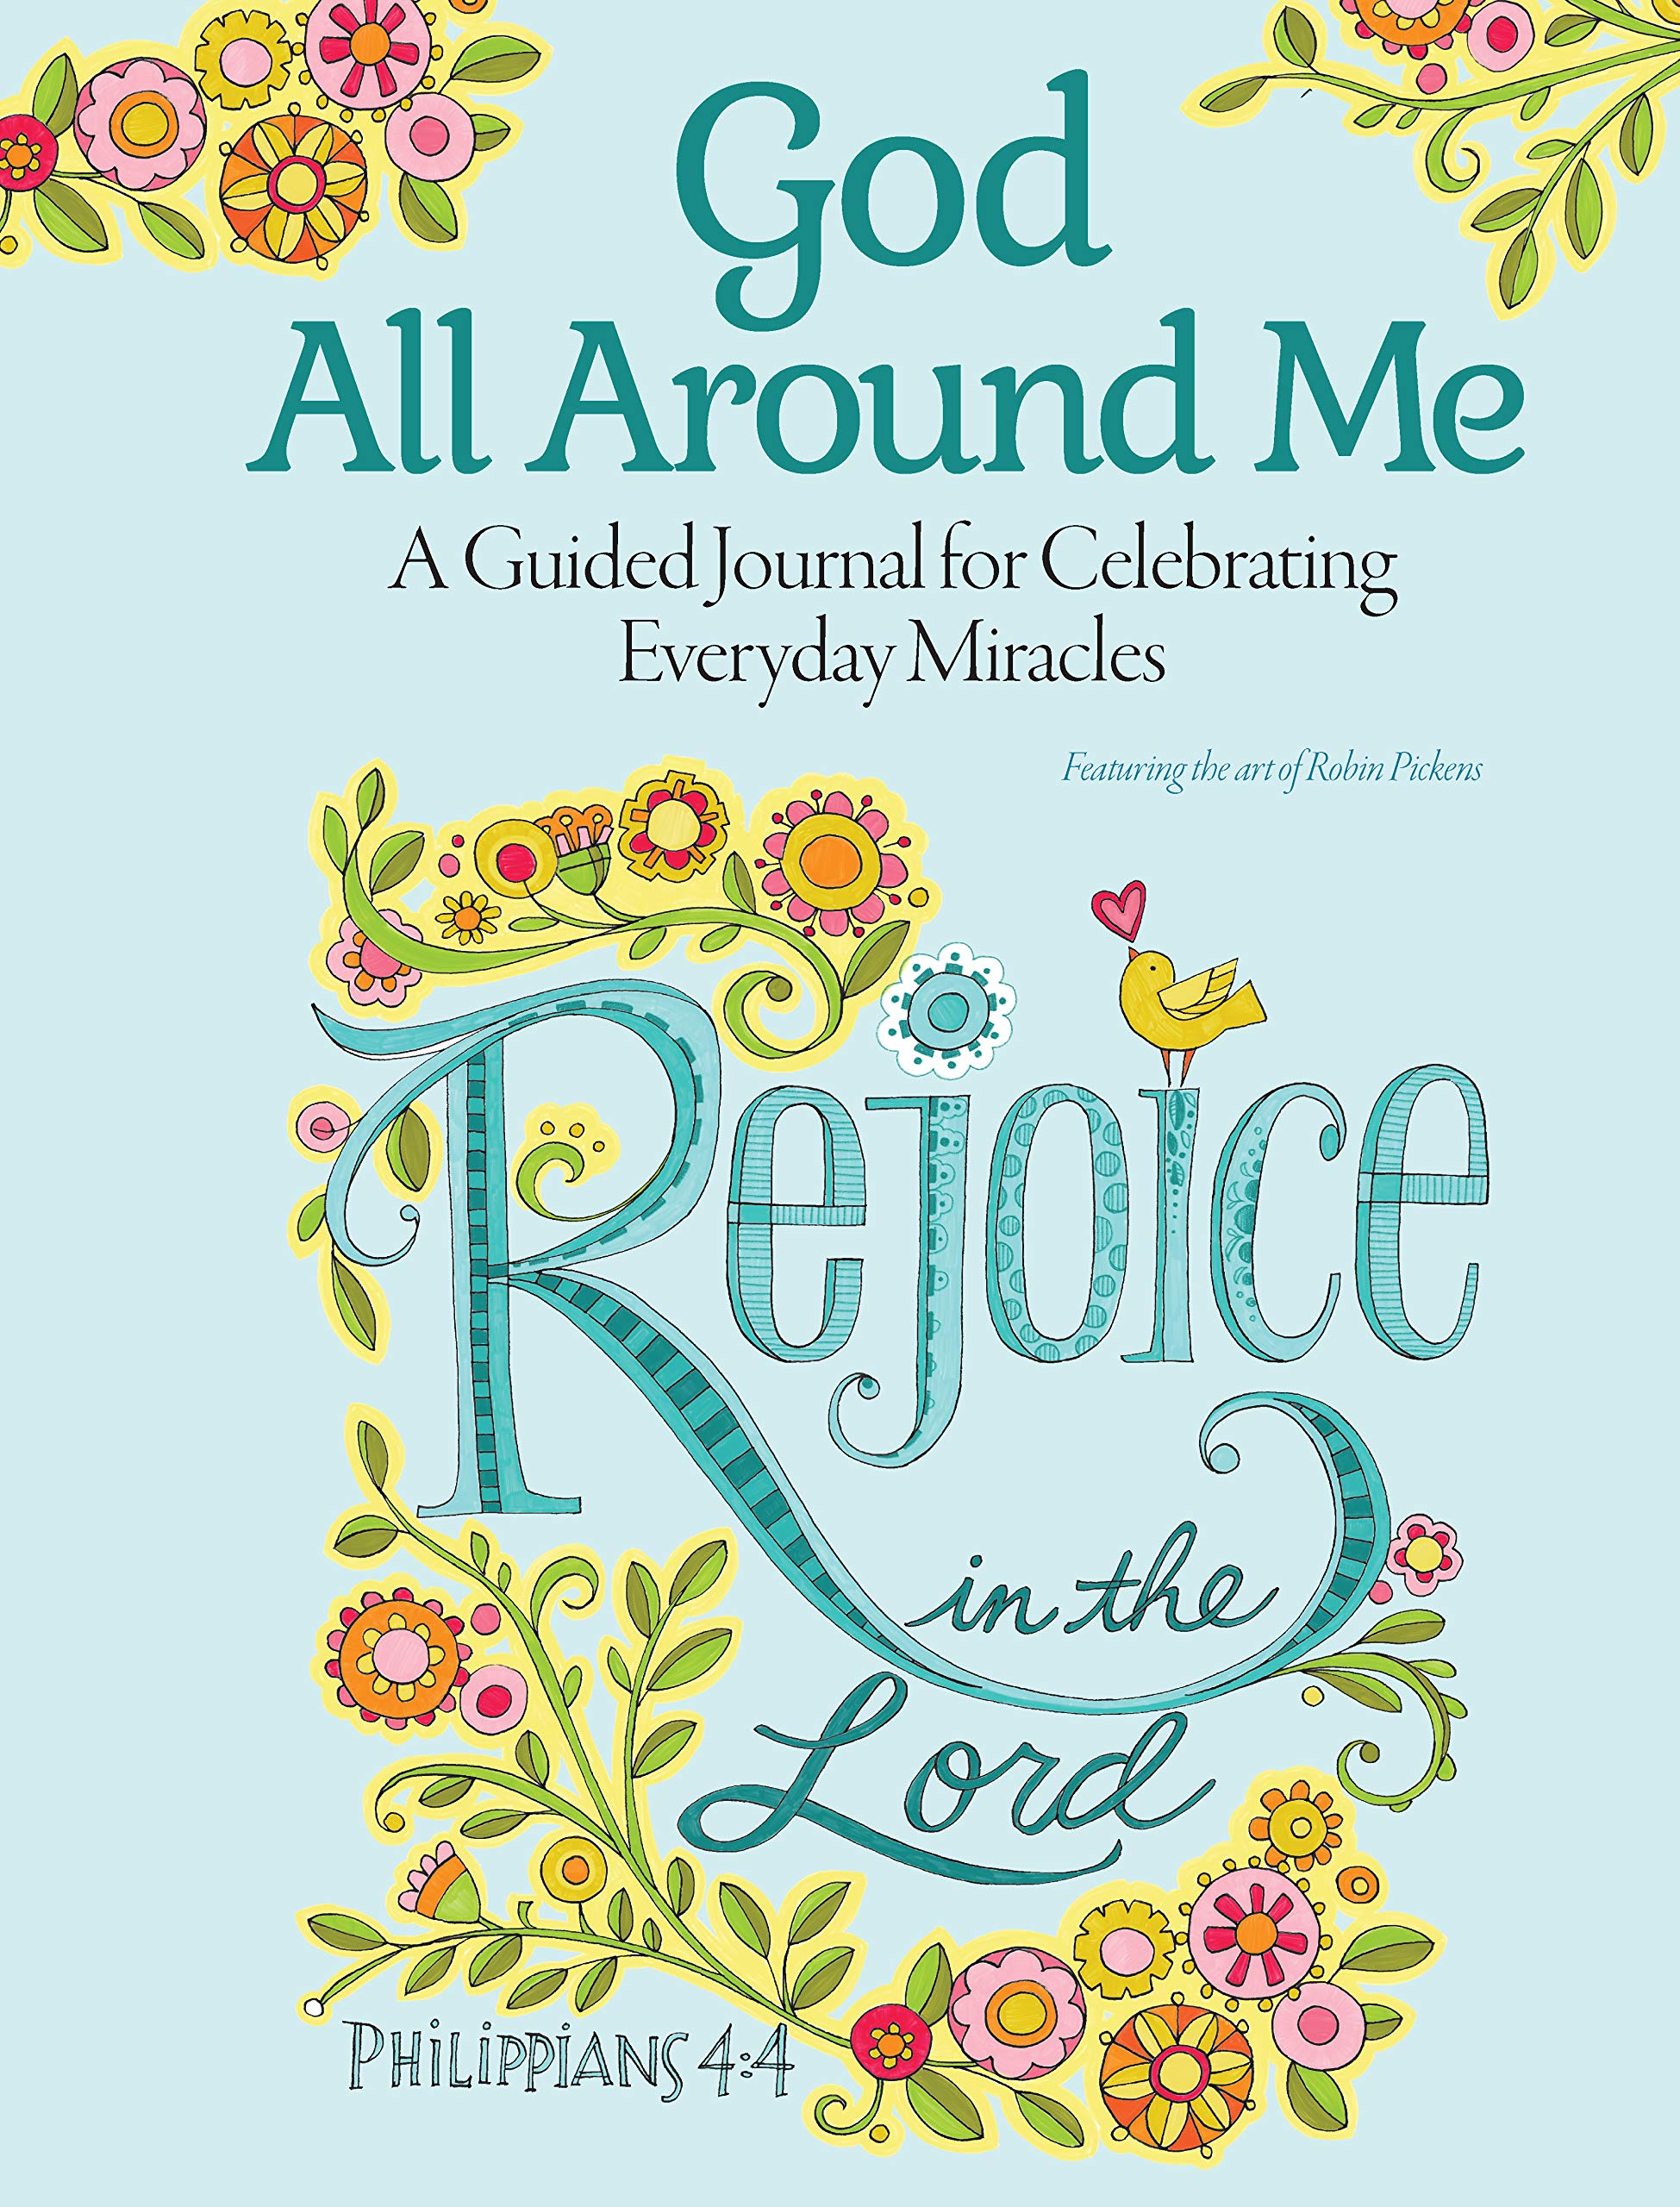 God All Around Me: A Guided Journal for Celebrating Everyday Miracles (Quiet Fox Designs) Scripture Verses, Uplifting Art, and Thoughtful Prompts to Encourage Reflection & Appreciation of God's Gifts PDF